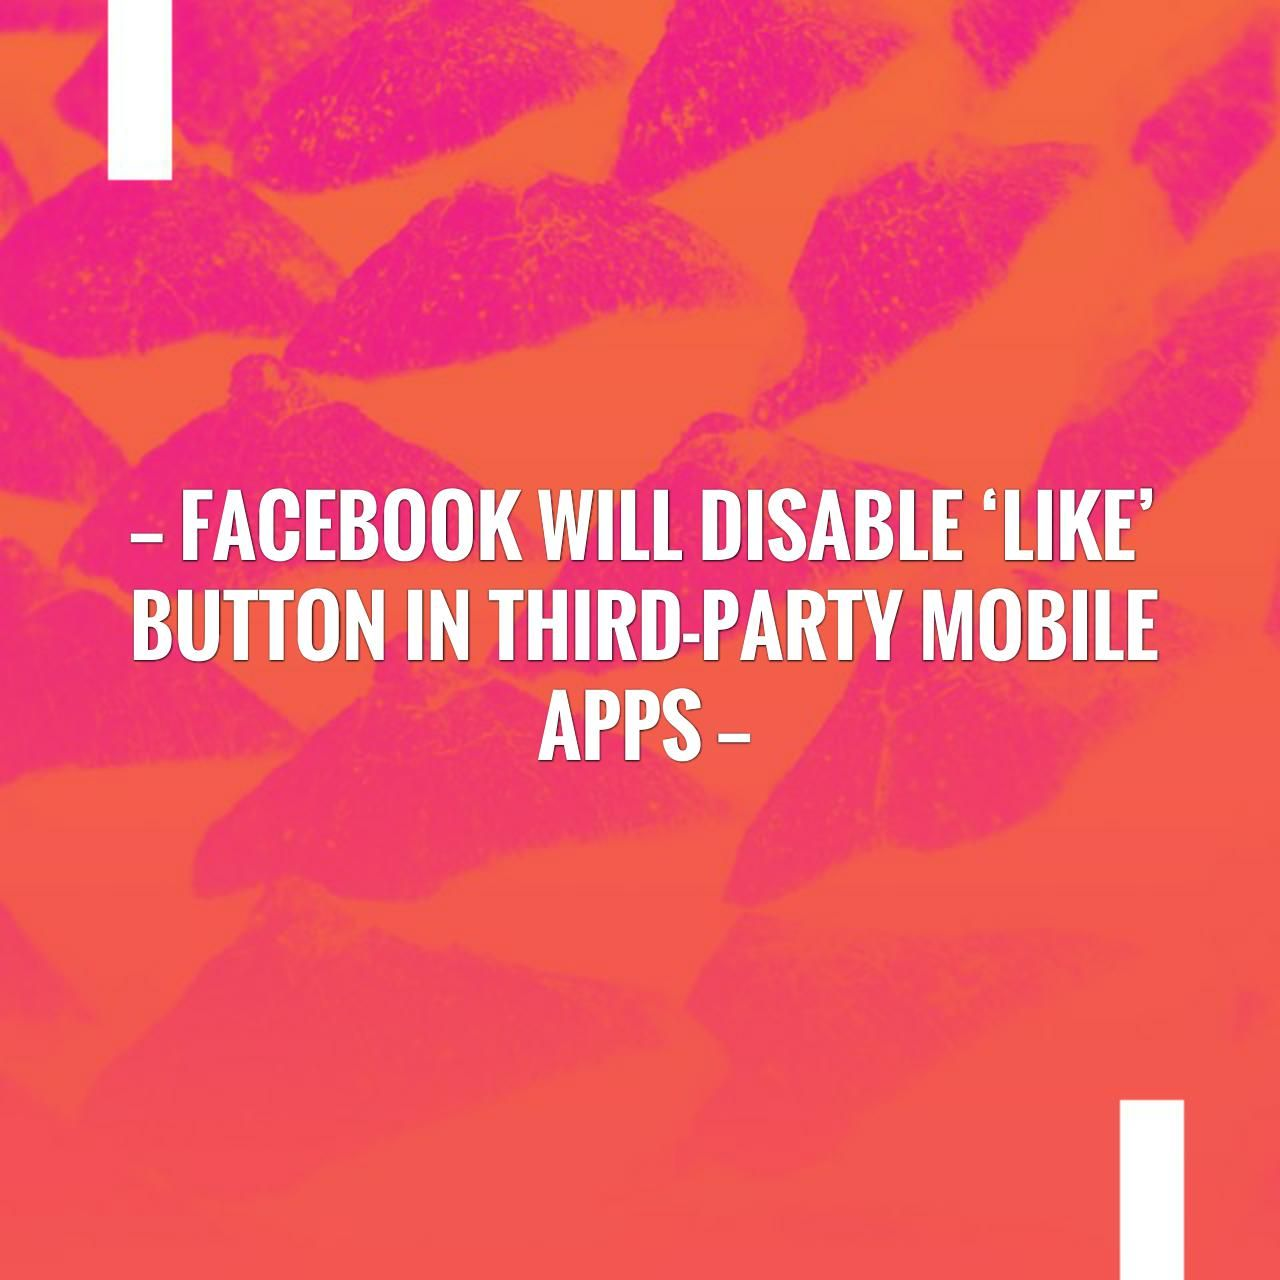 Facebook will disable 'Like' button in thirdparty mobile